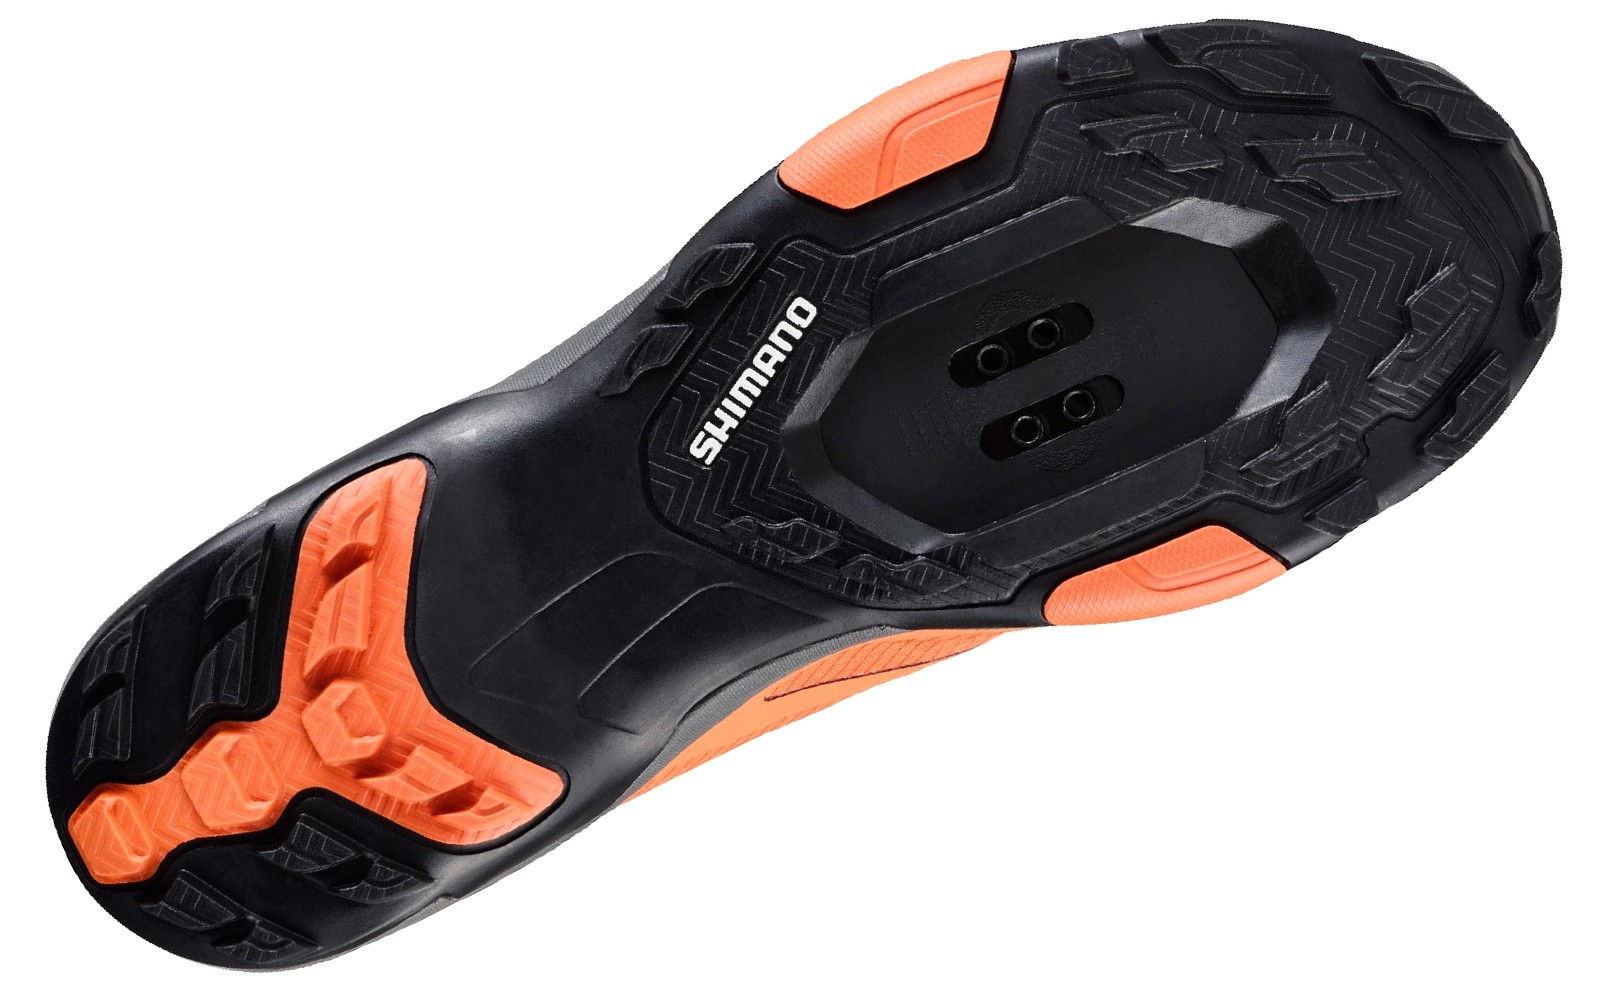 shimano-mt7-spd-mountain-touring-shoes-orange-eshmt7pc420sr00-par-sole